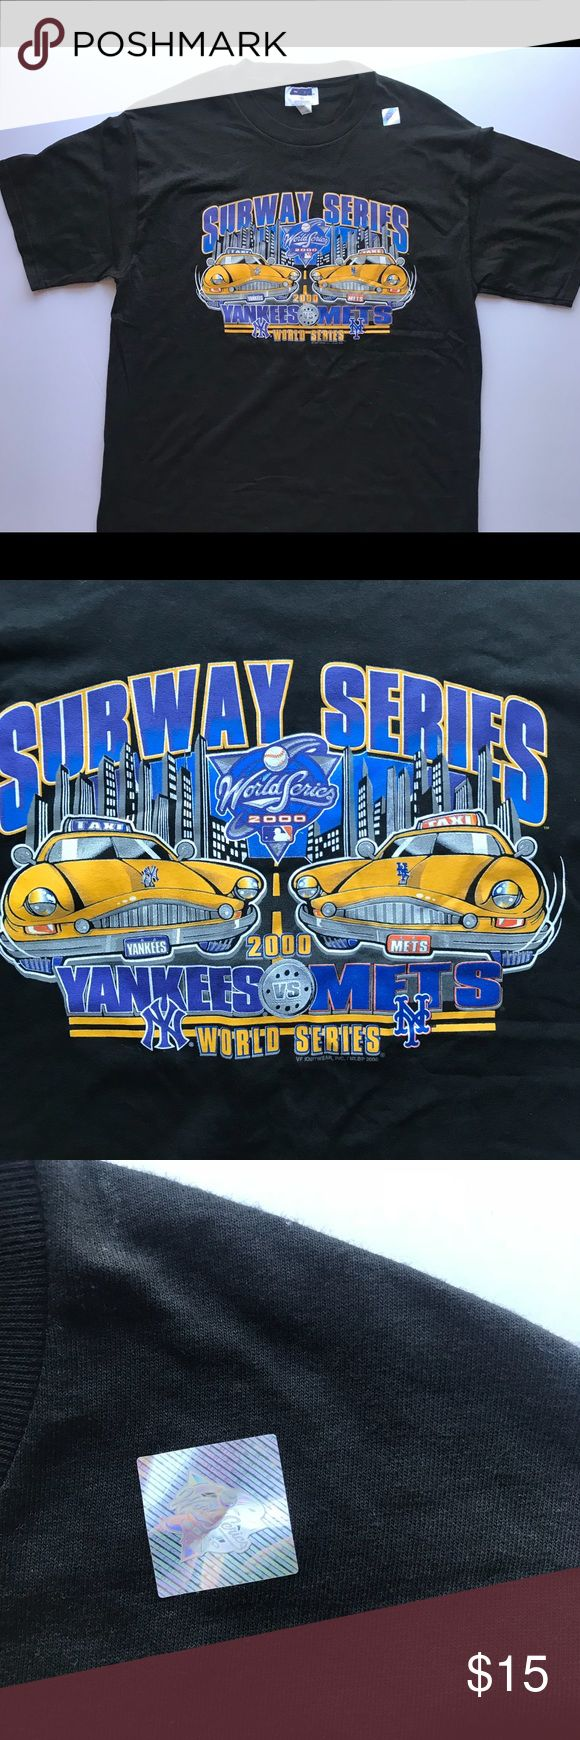 MLB 2000 Subway Series Shirt Item is brand new with sticker, never worn. Let me know if you have any questions! CSA Shirts Tees - Short Sleeve